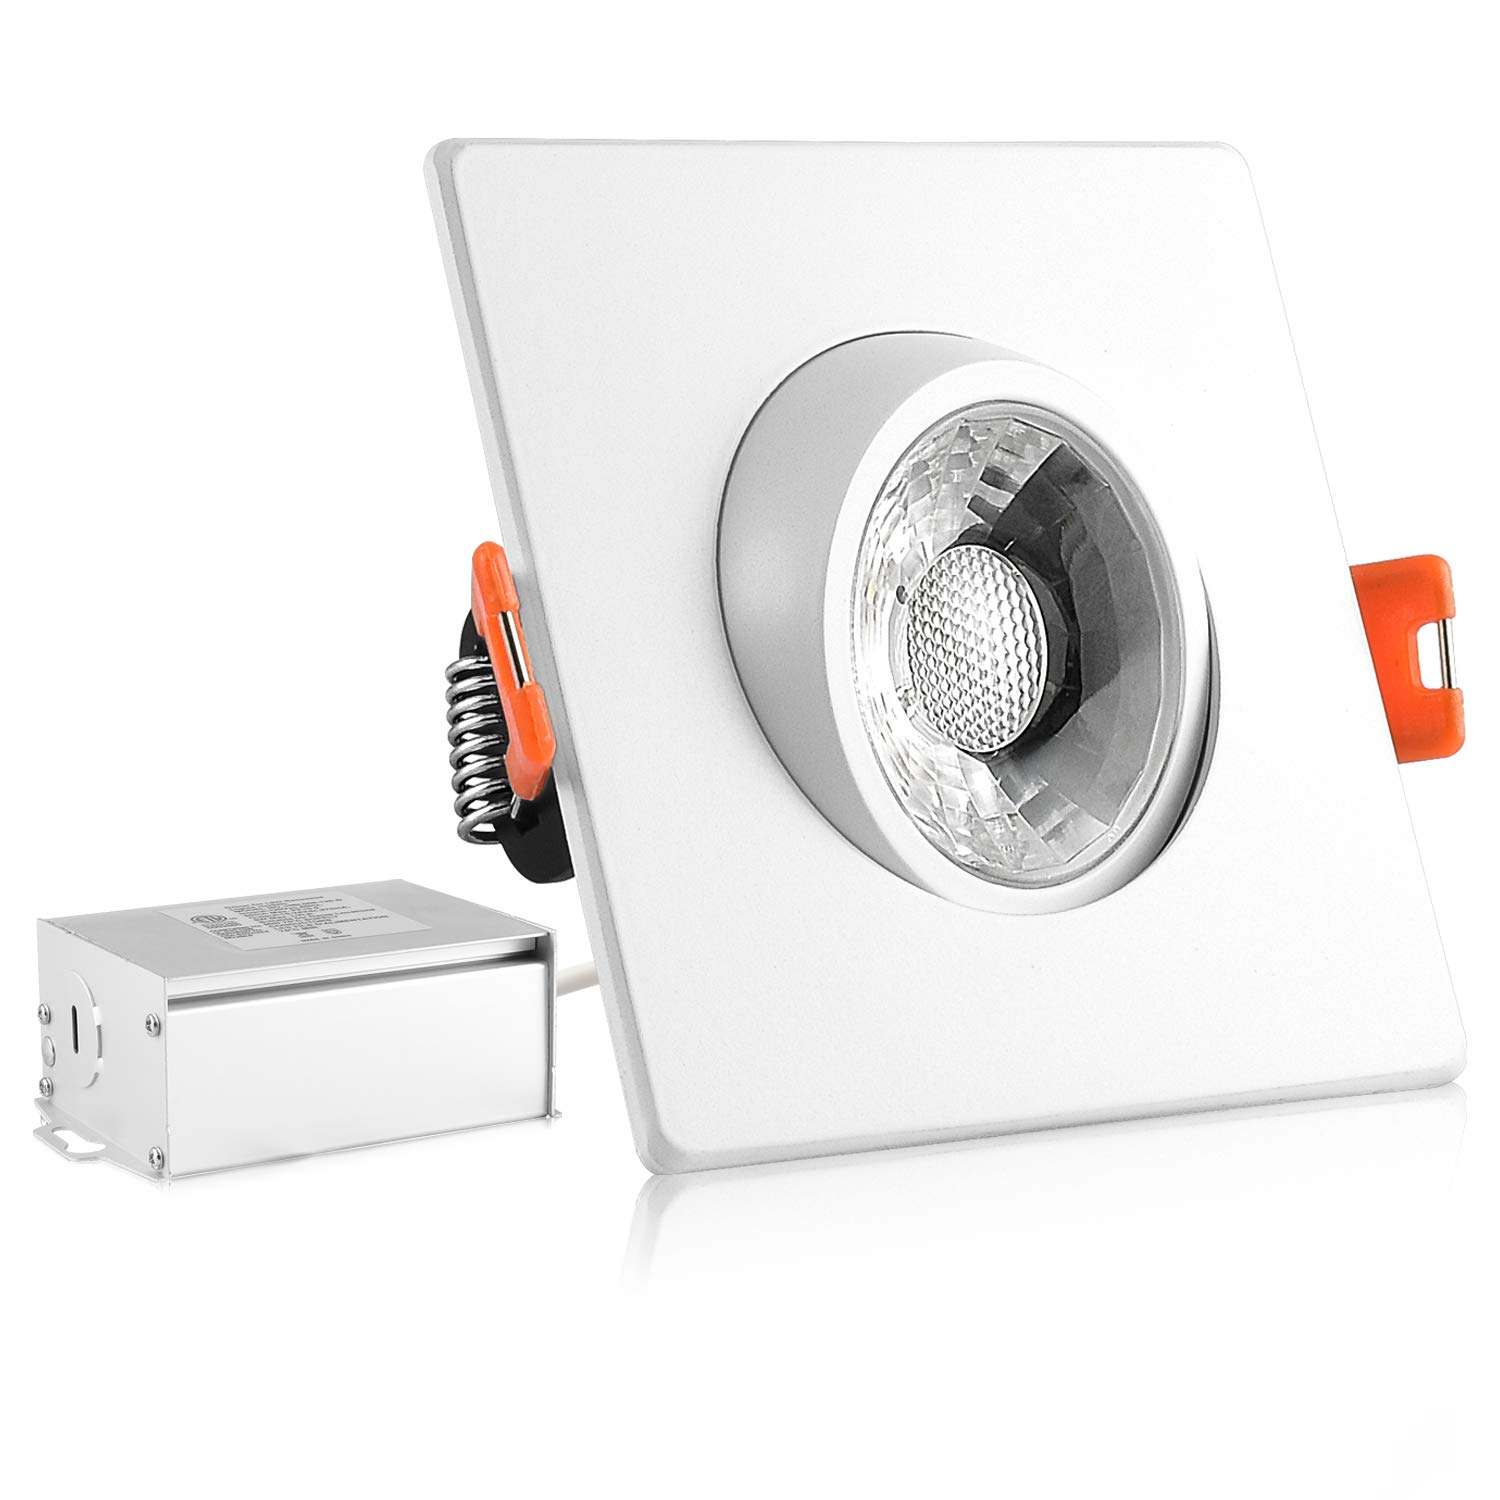 Luxrite 3 Inch Gimbal LED Square Recessed Light with Junction Box, 8W, 5000K Bright White, 600 Lumens, Dimmable Downlight, Energy Star & IC Rated, Damp Location - Adjustable Recessed Lighting